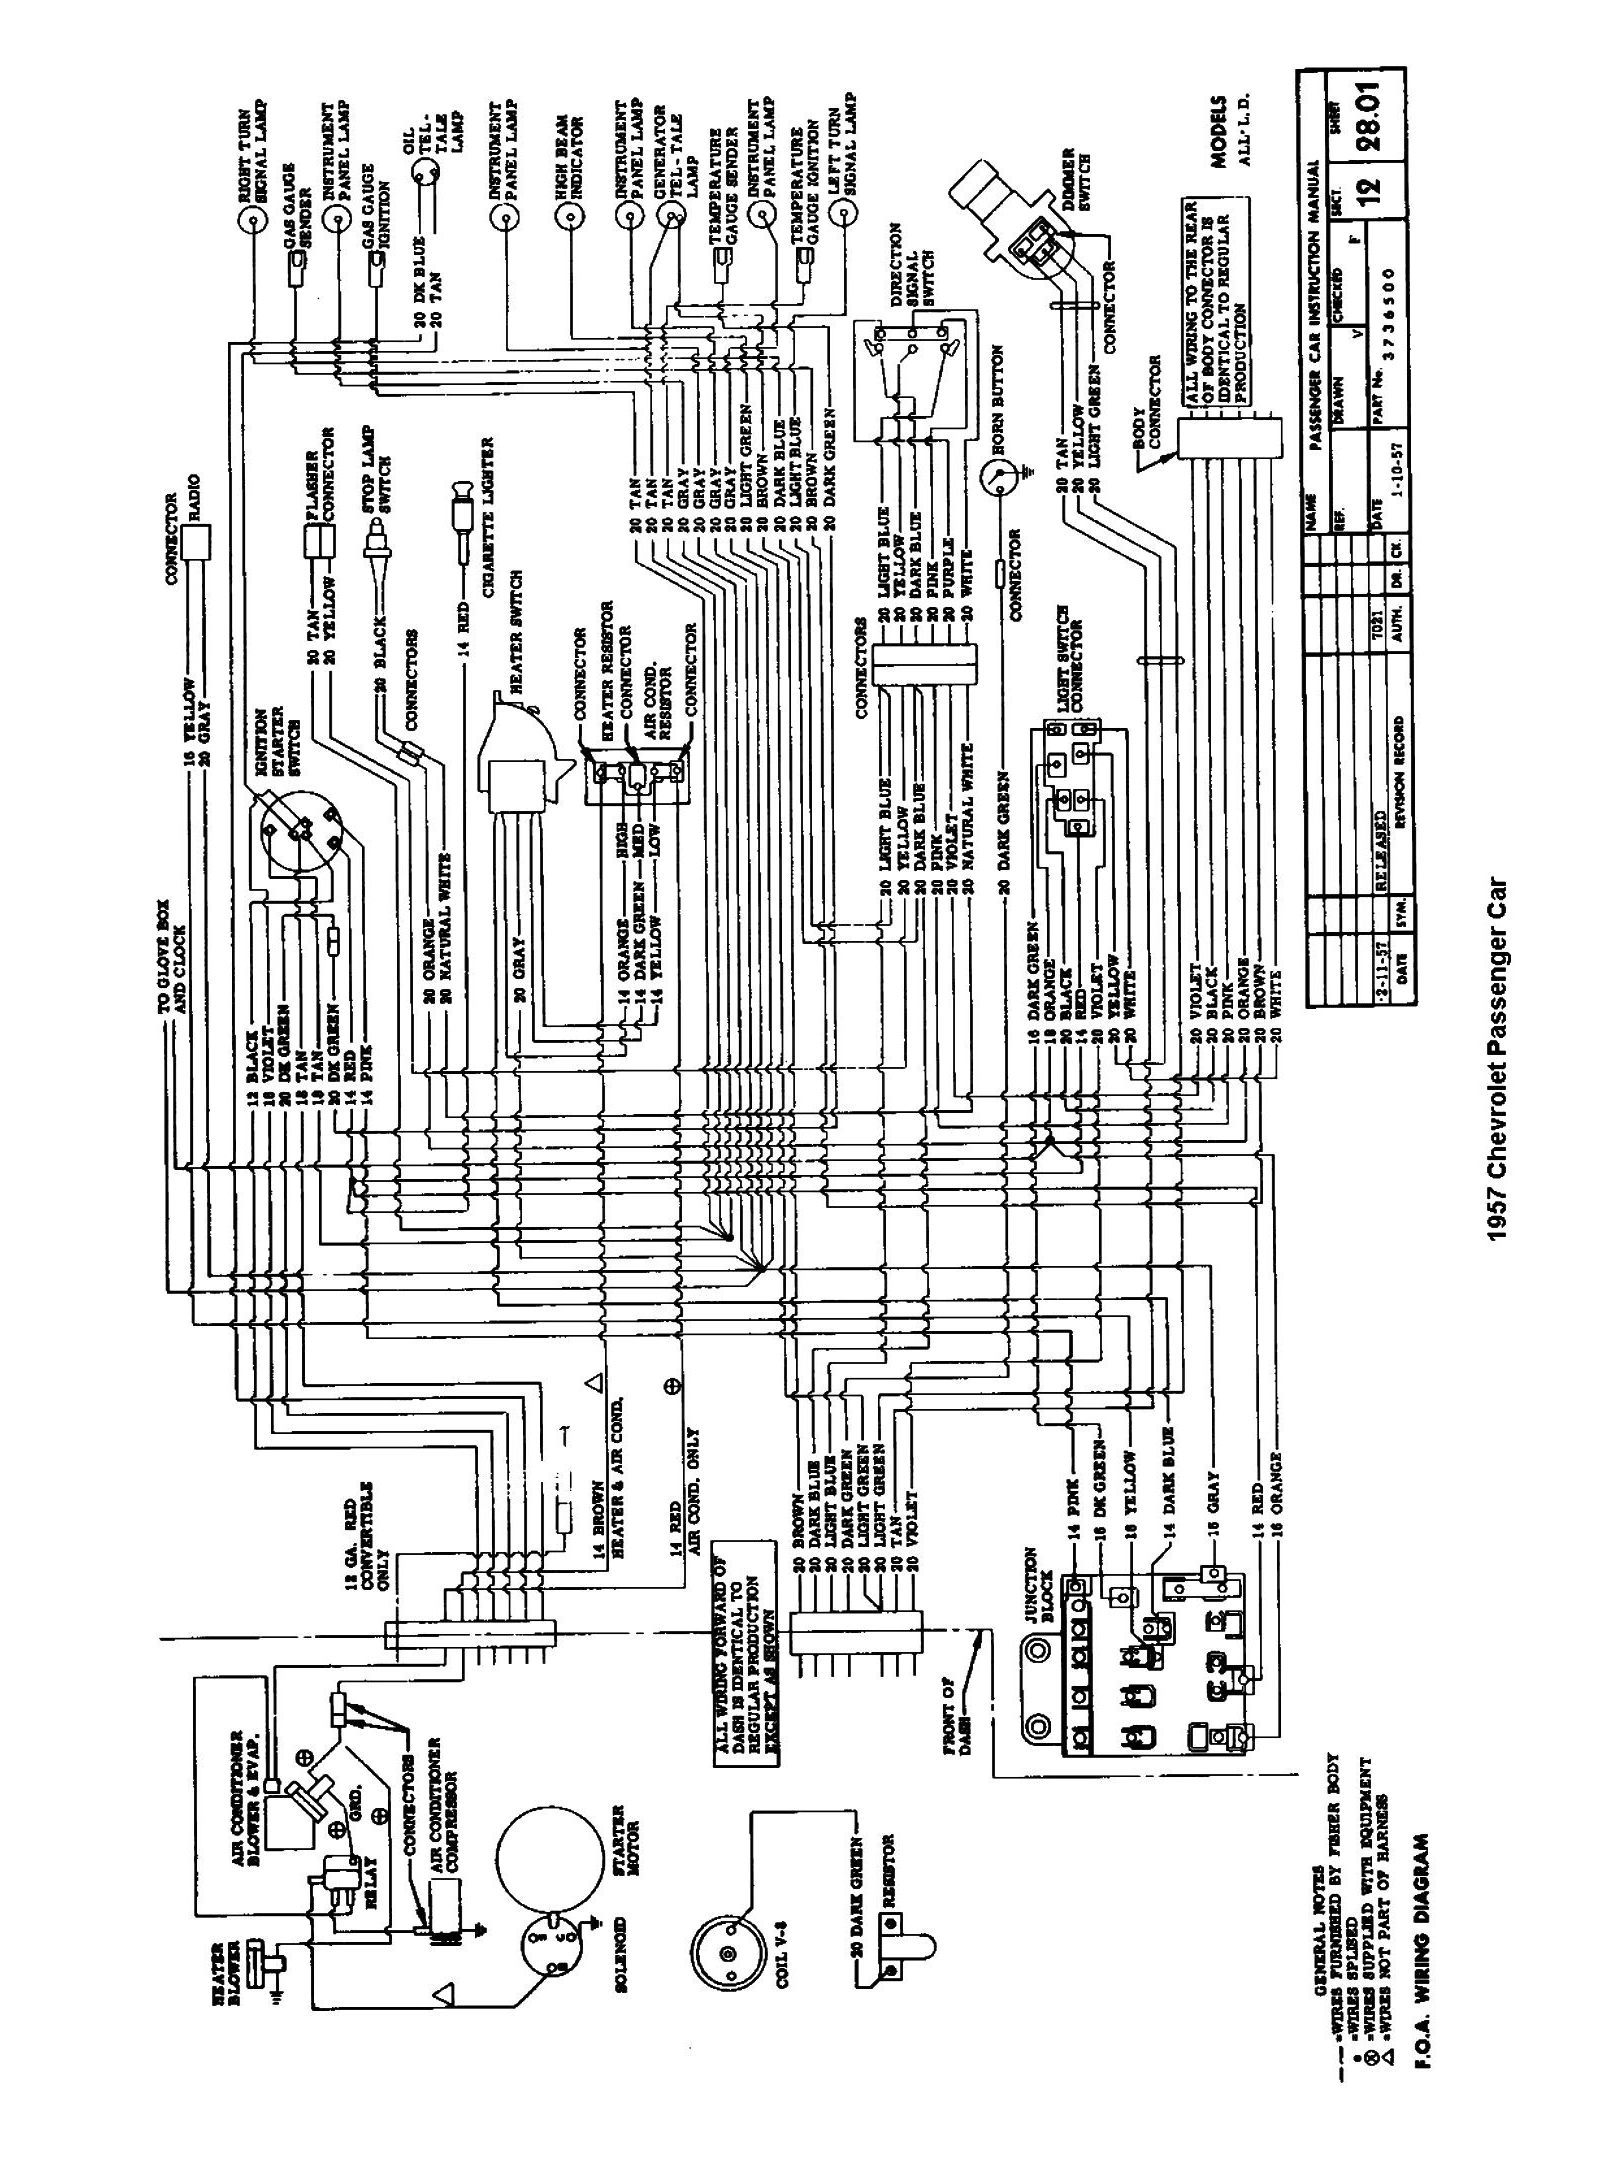 57 Chevy Coil Wiring Diagrams Best Hei Ignition Conversion Wire Diagram Schematic Pickup